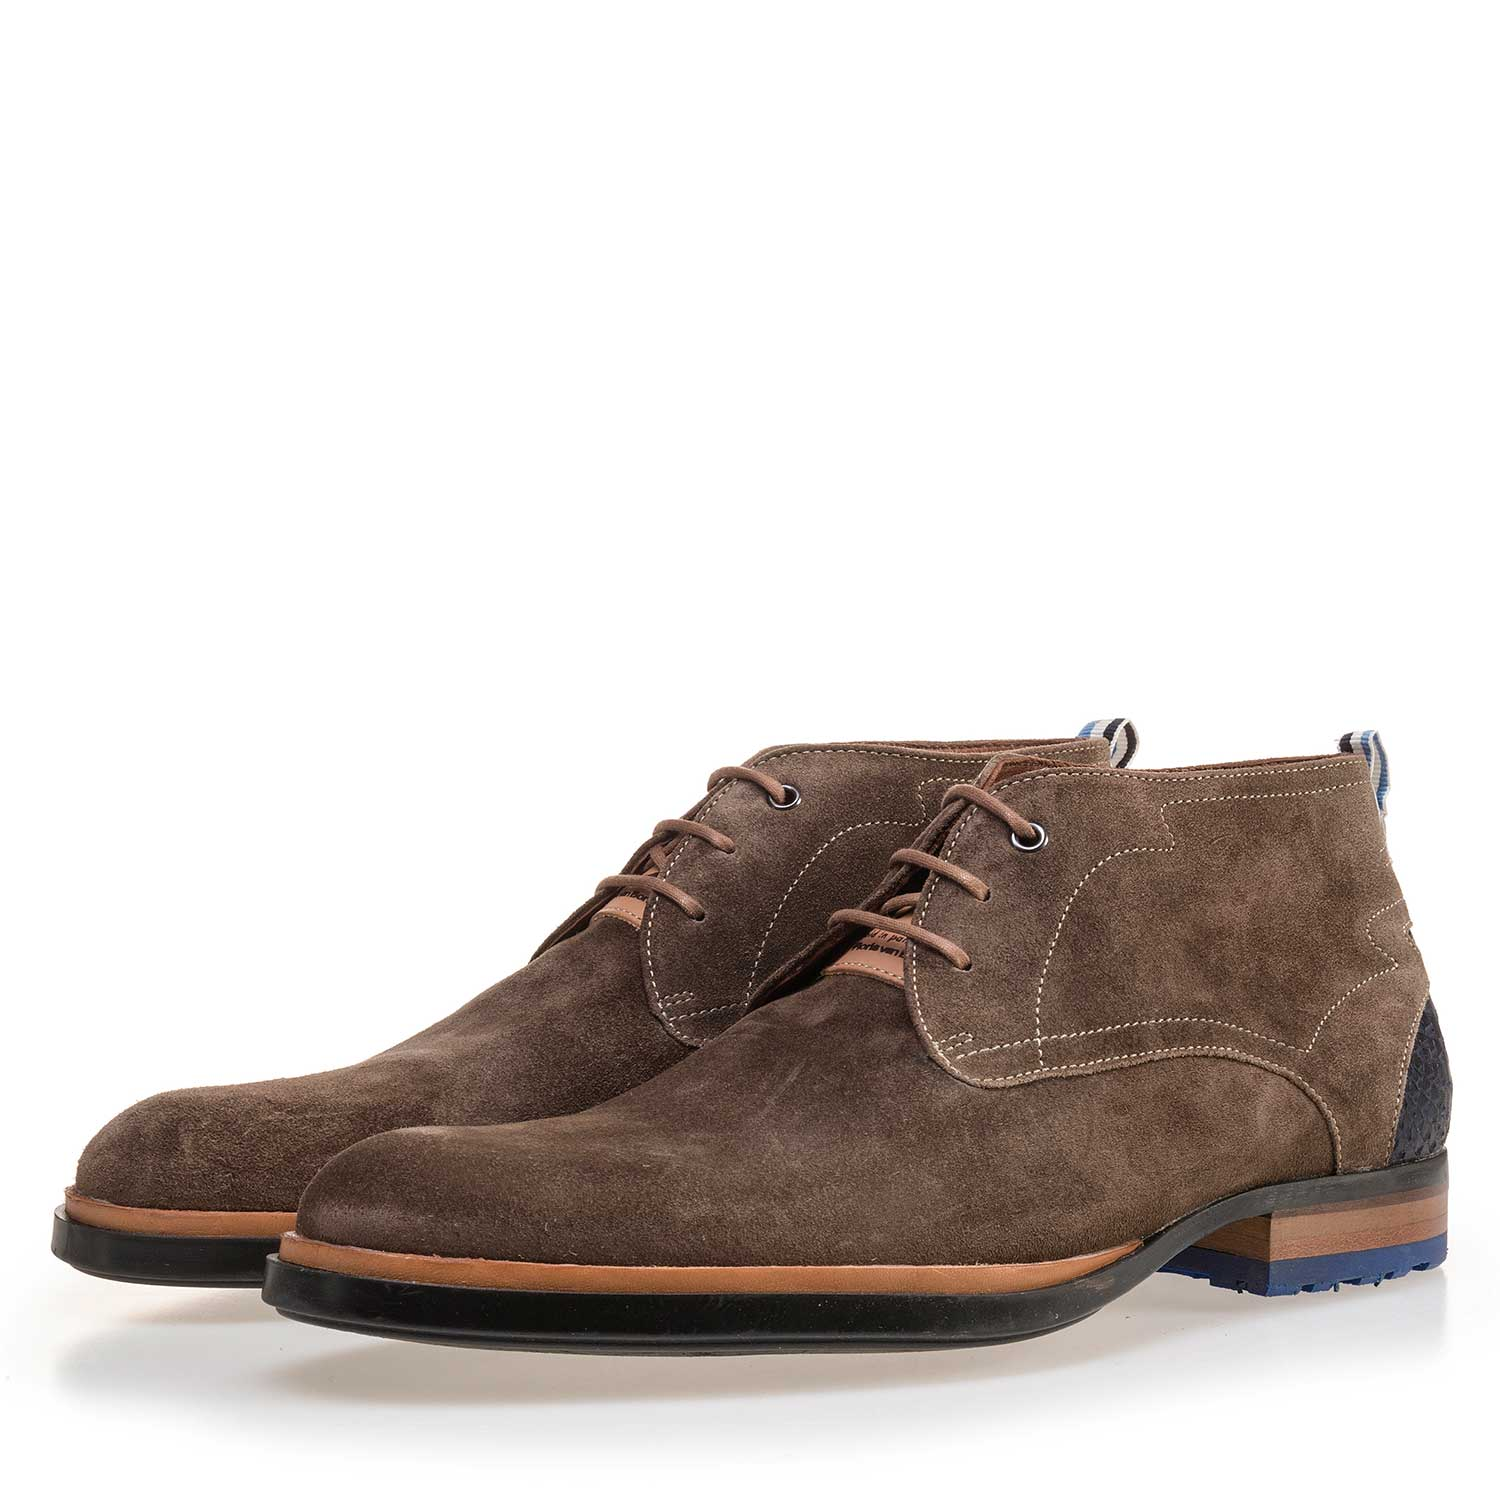 10947/13 - Suede leather lace boot dark taupe